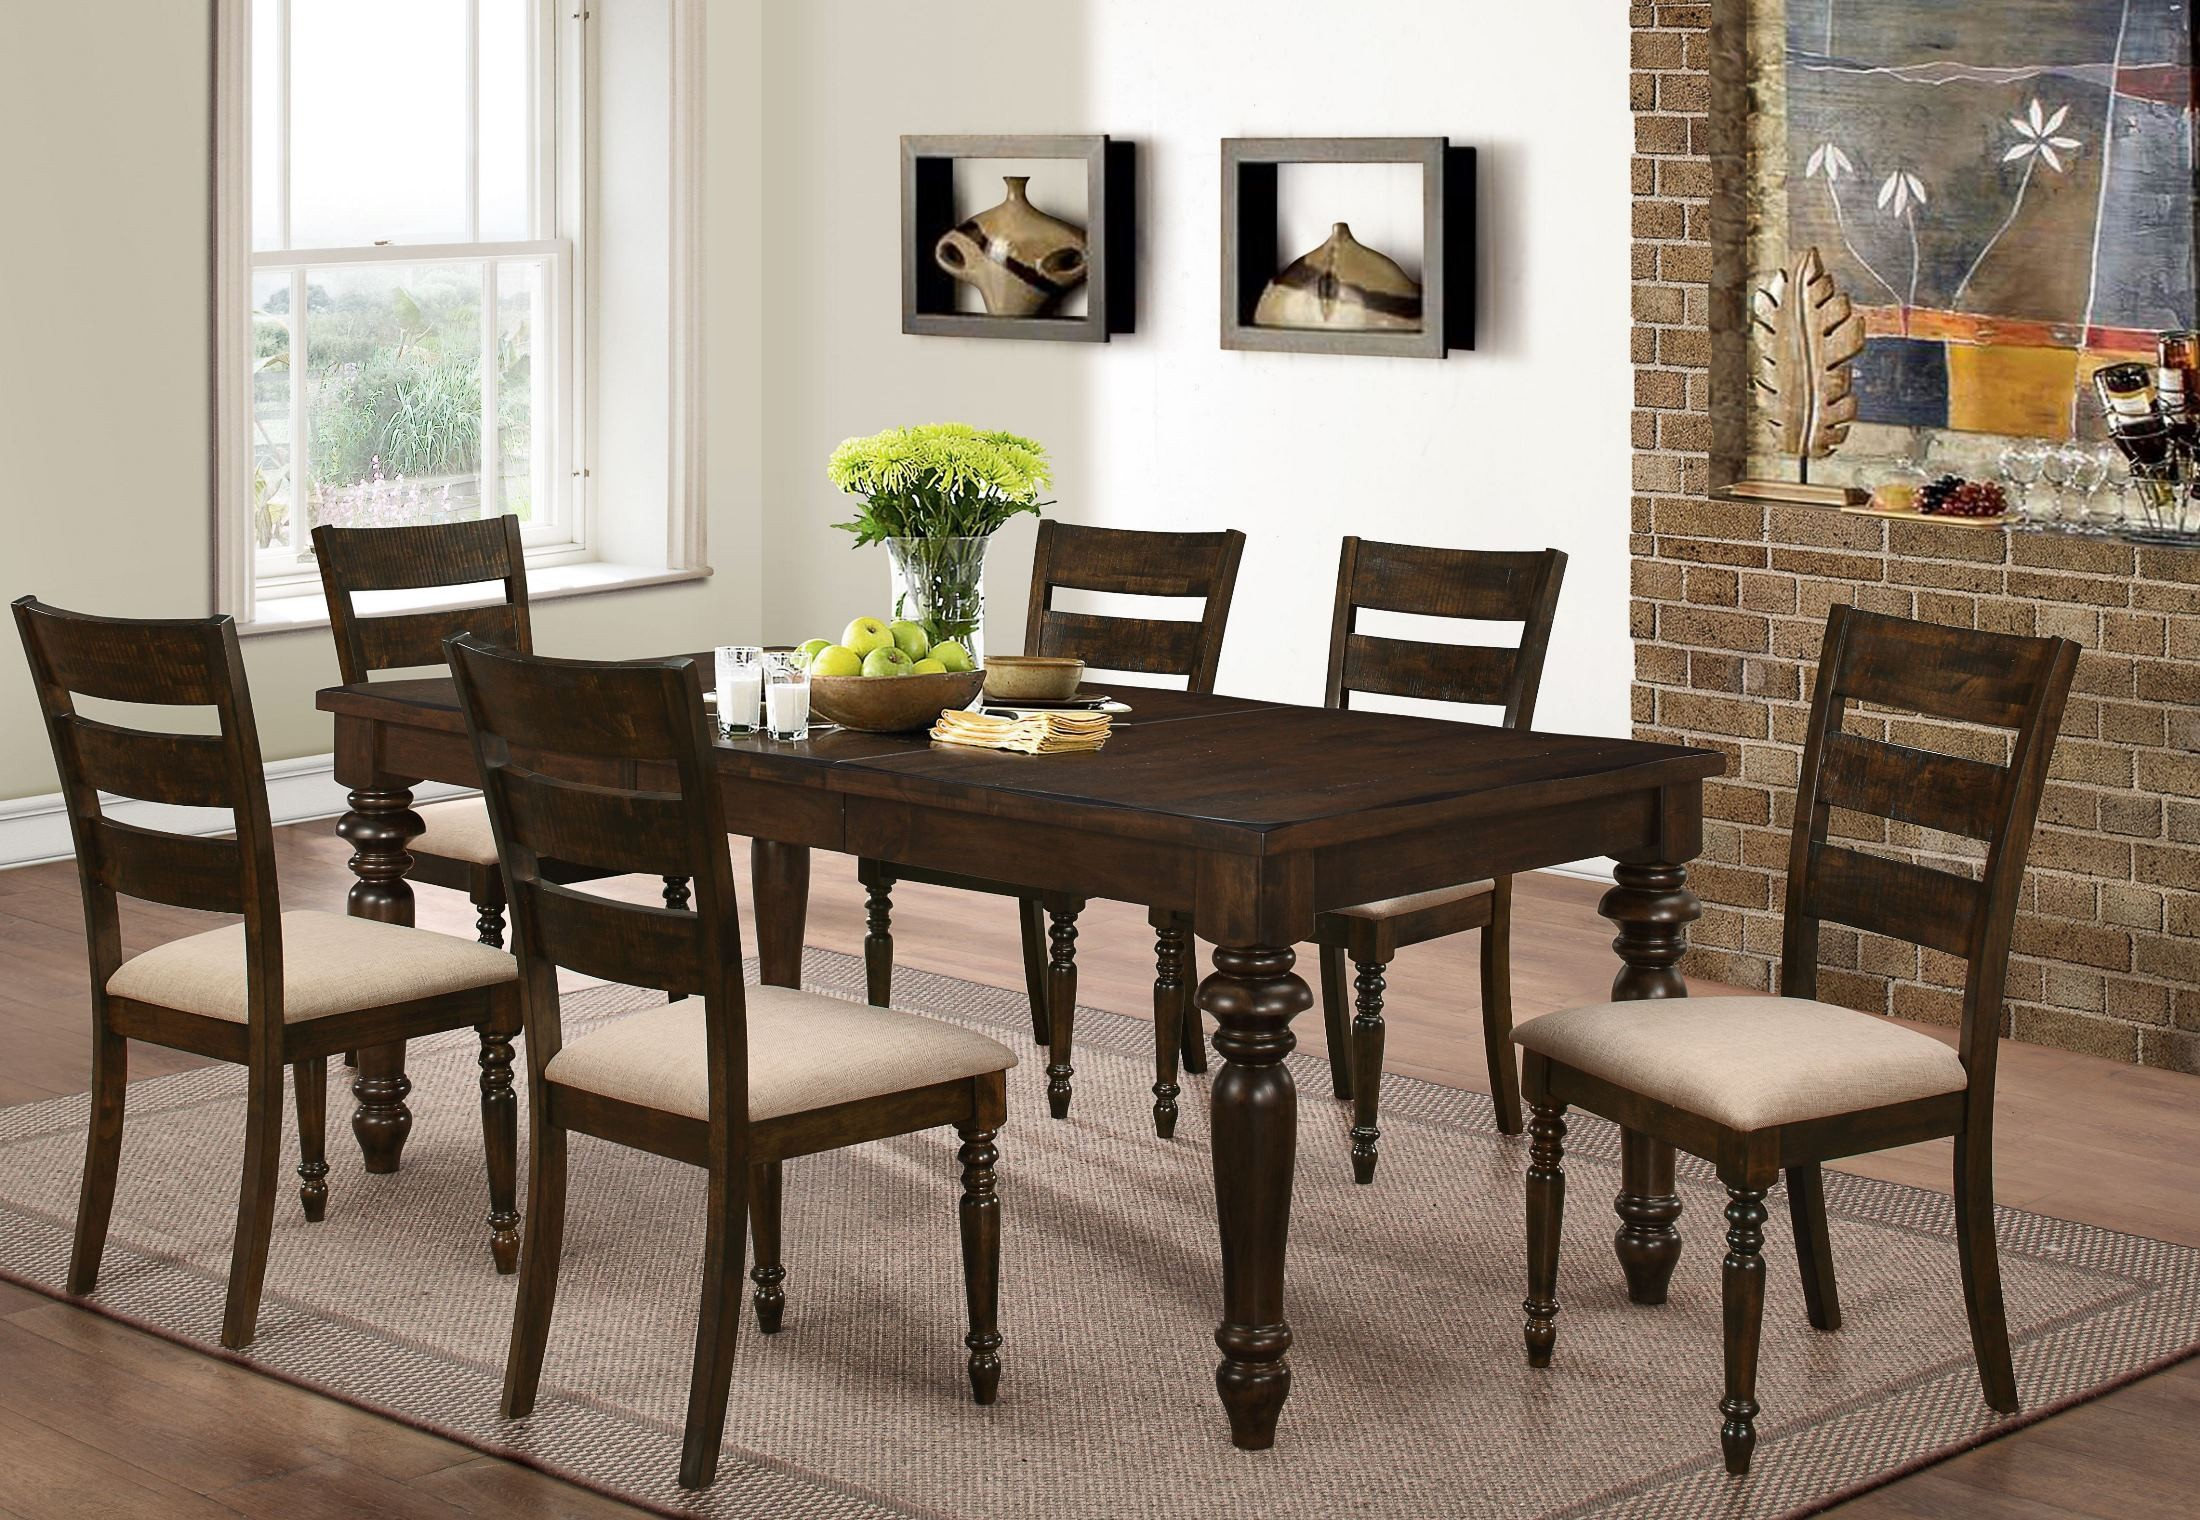 Annandale antique tobacco dining room set from new classic for Latest dining set